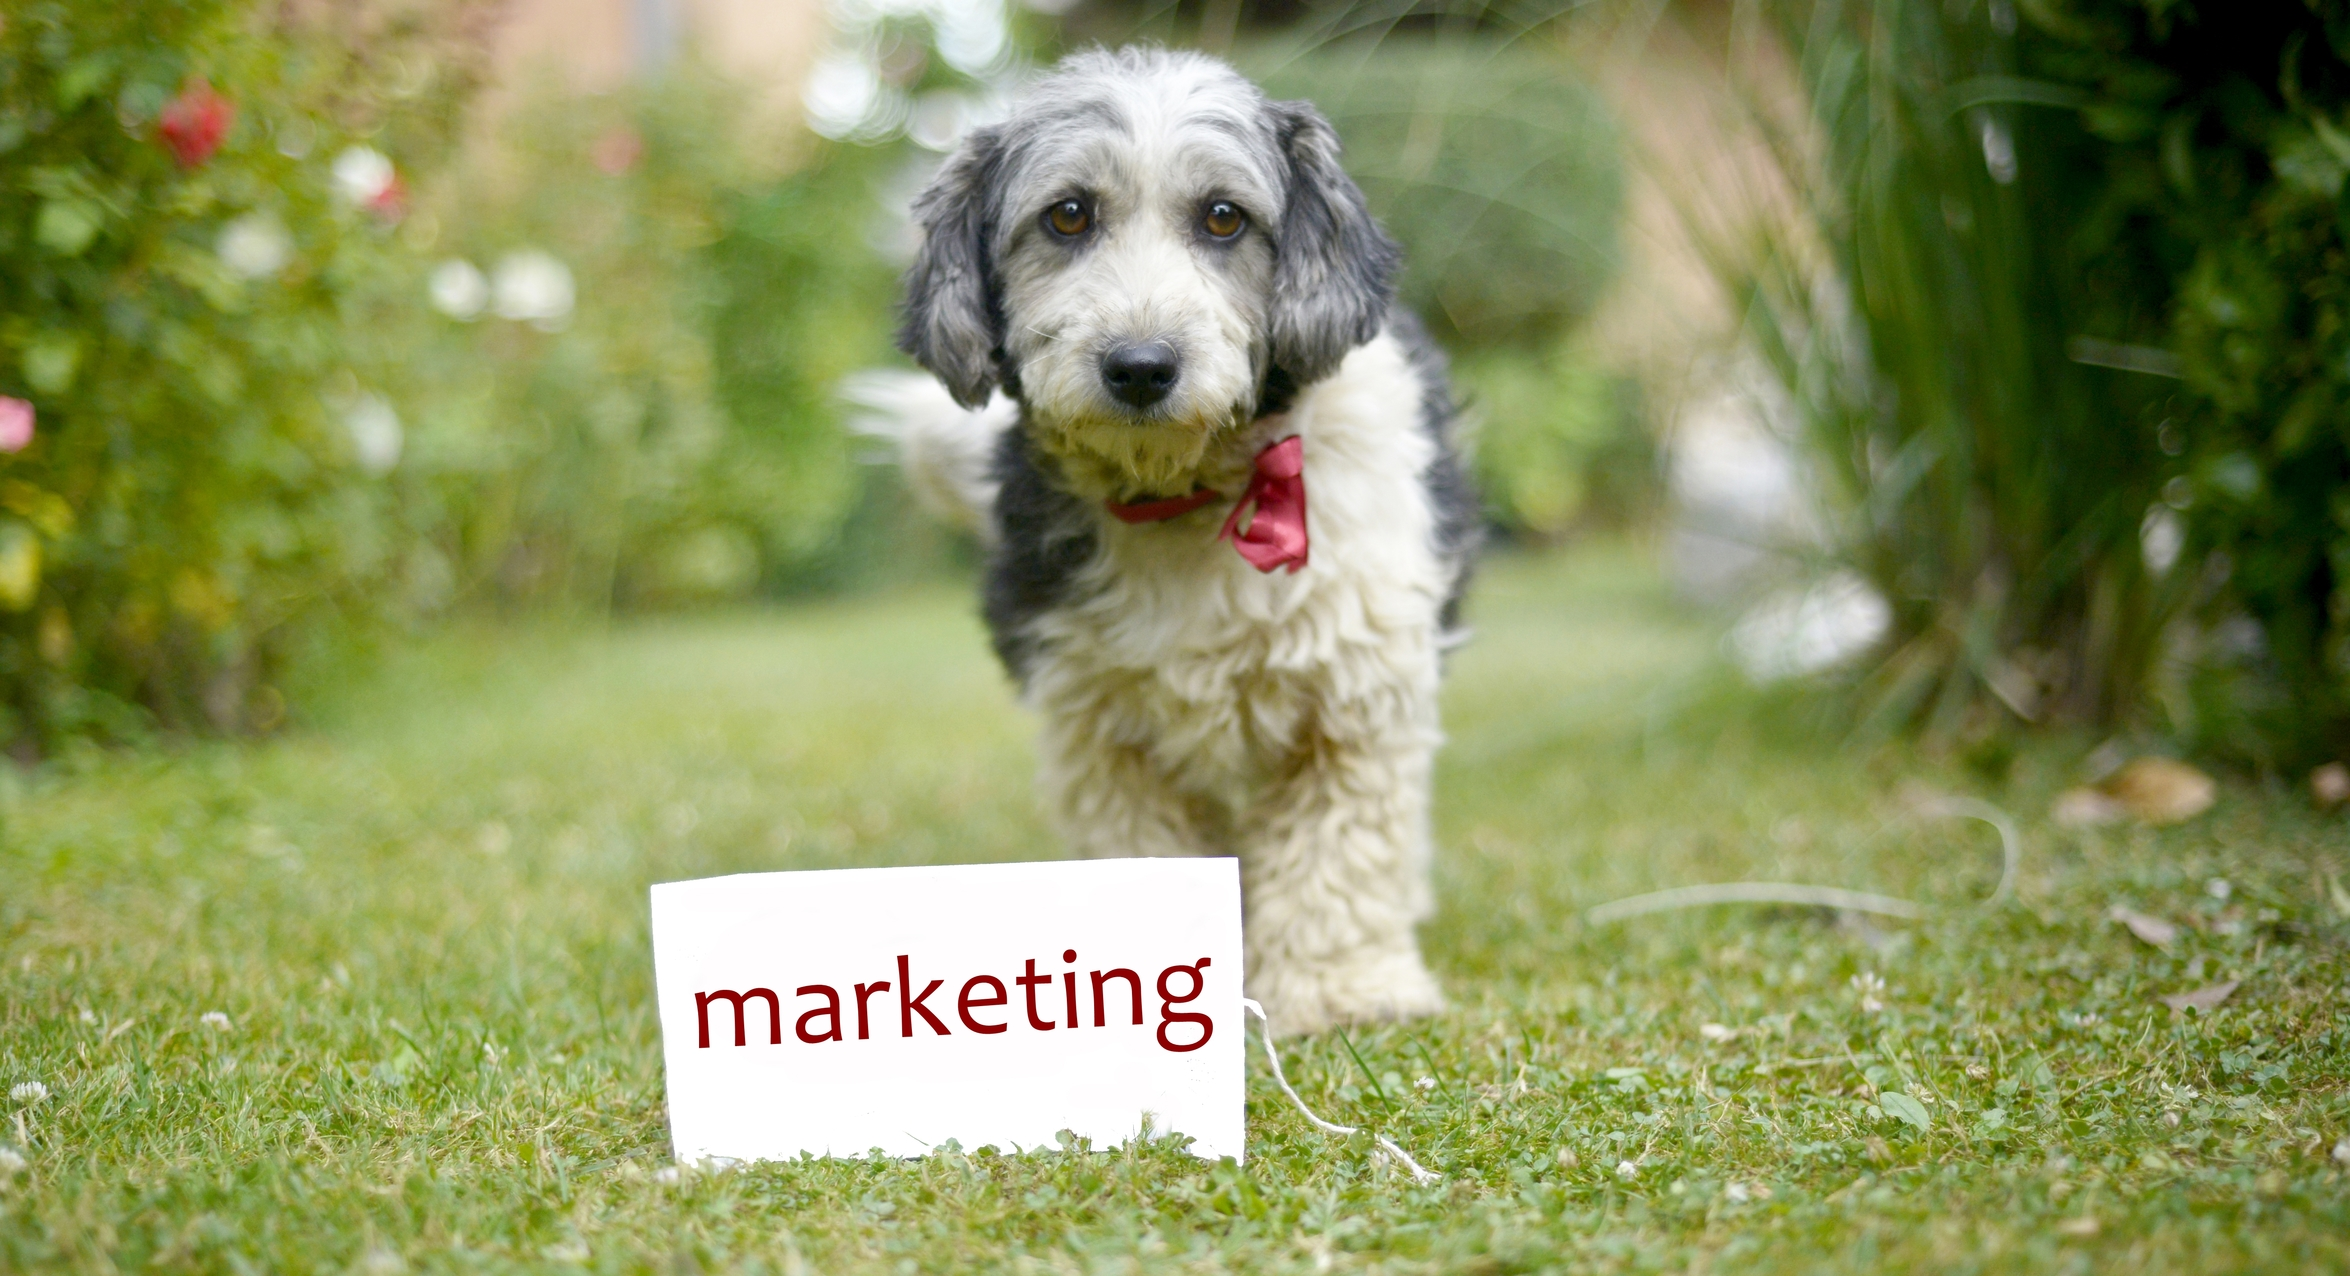 dog marketing